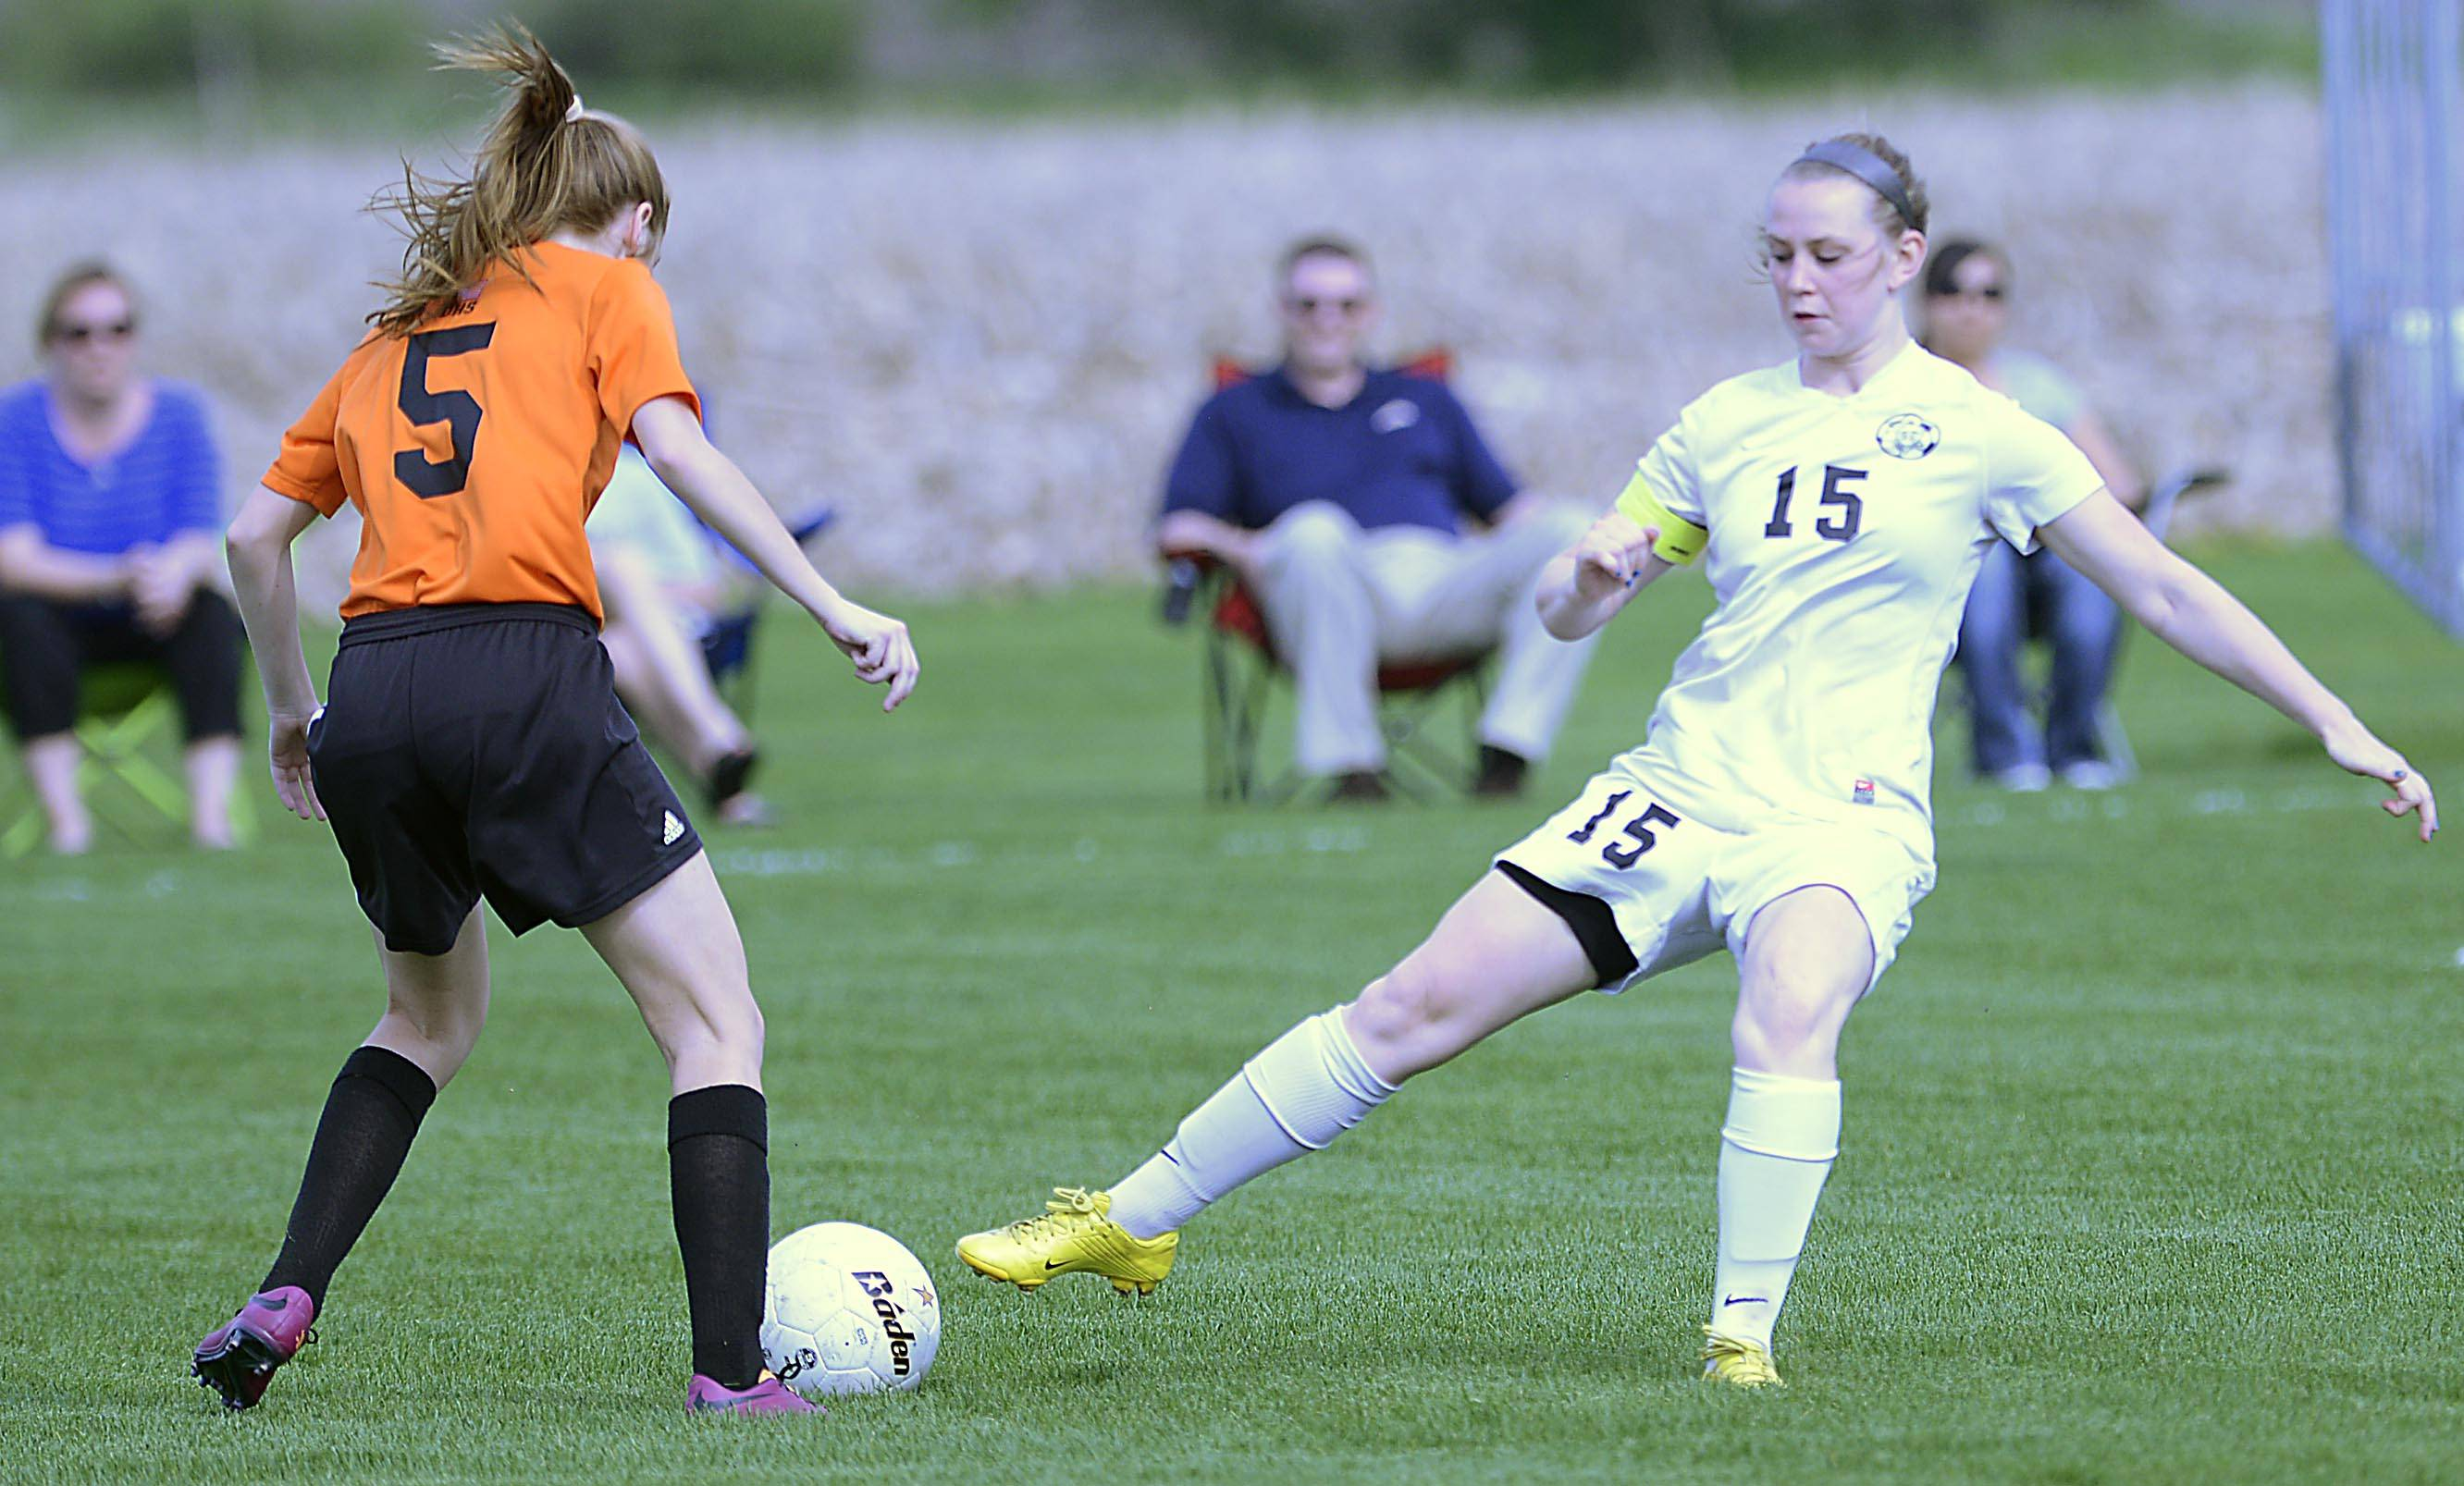 Kaneland's Brittany Olson punches the ball away from Dekalb.